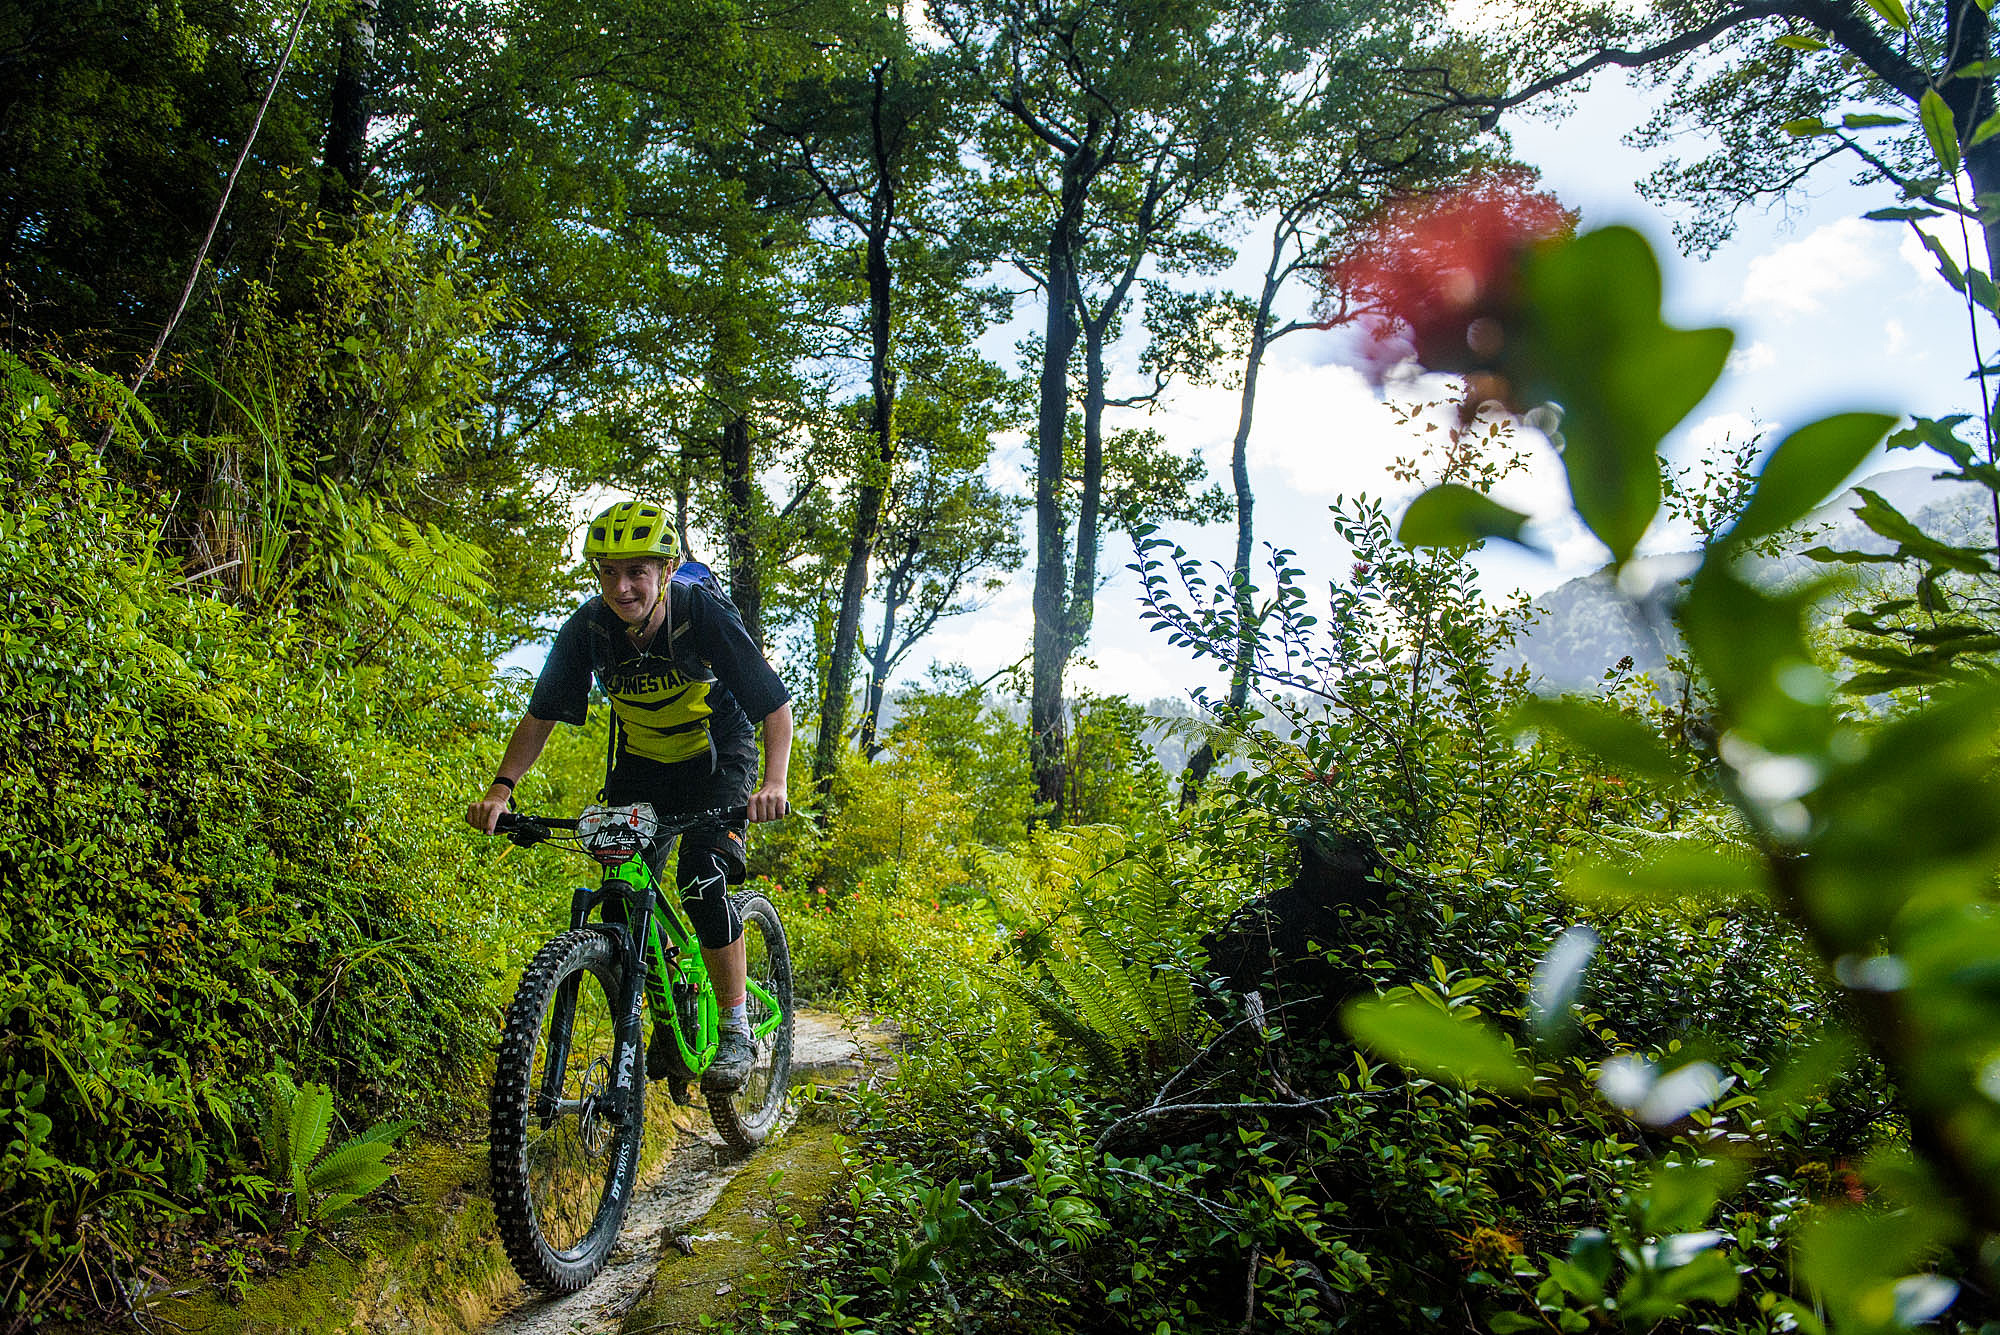 Riders made their way between the Rata flowers, Lancewoods and Black Beech trees.